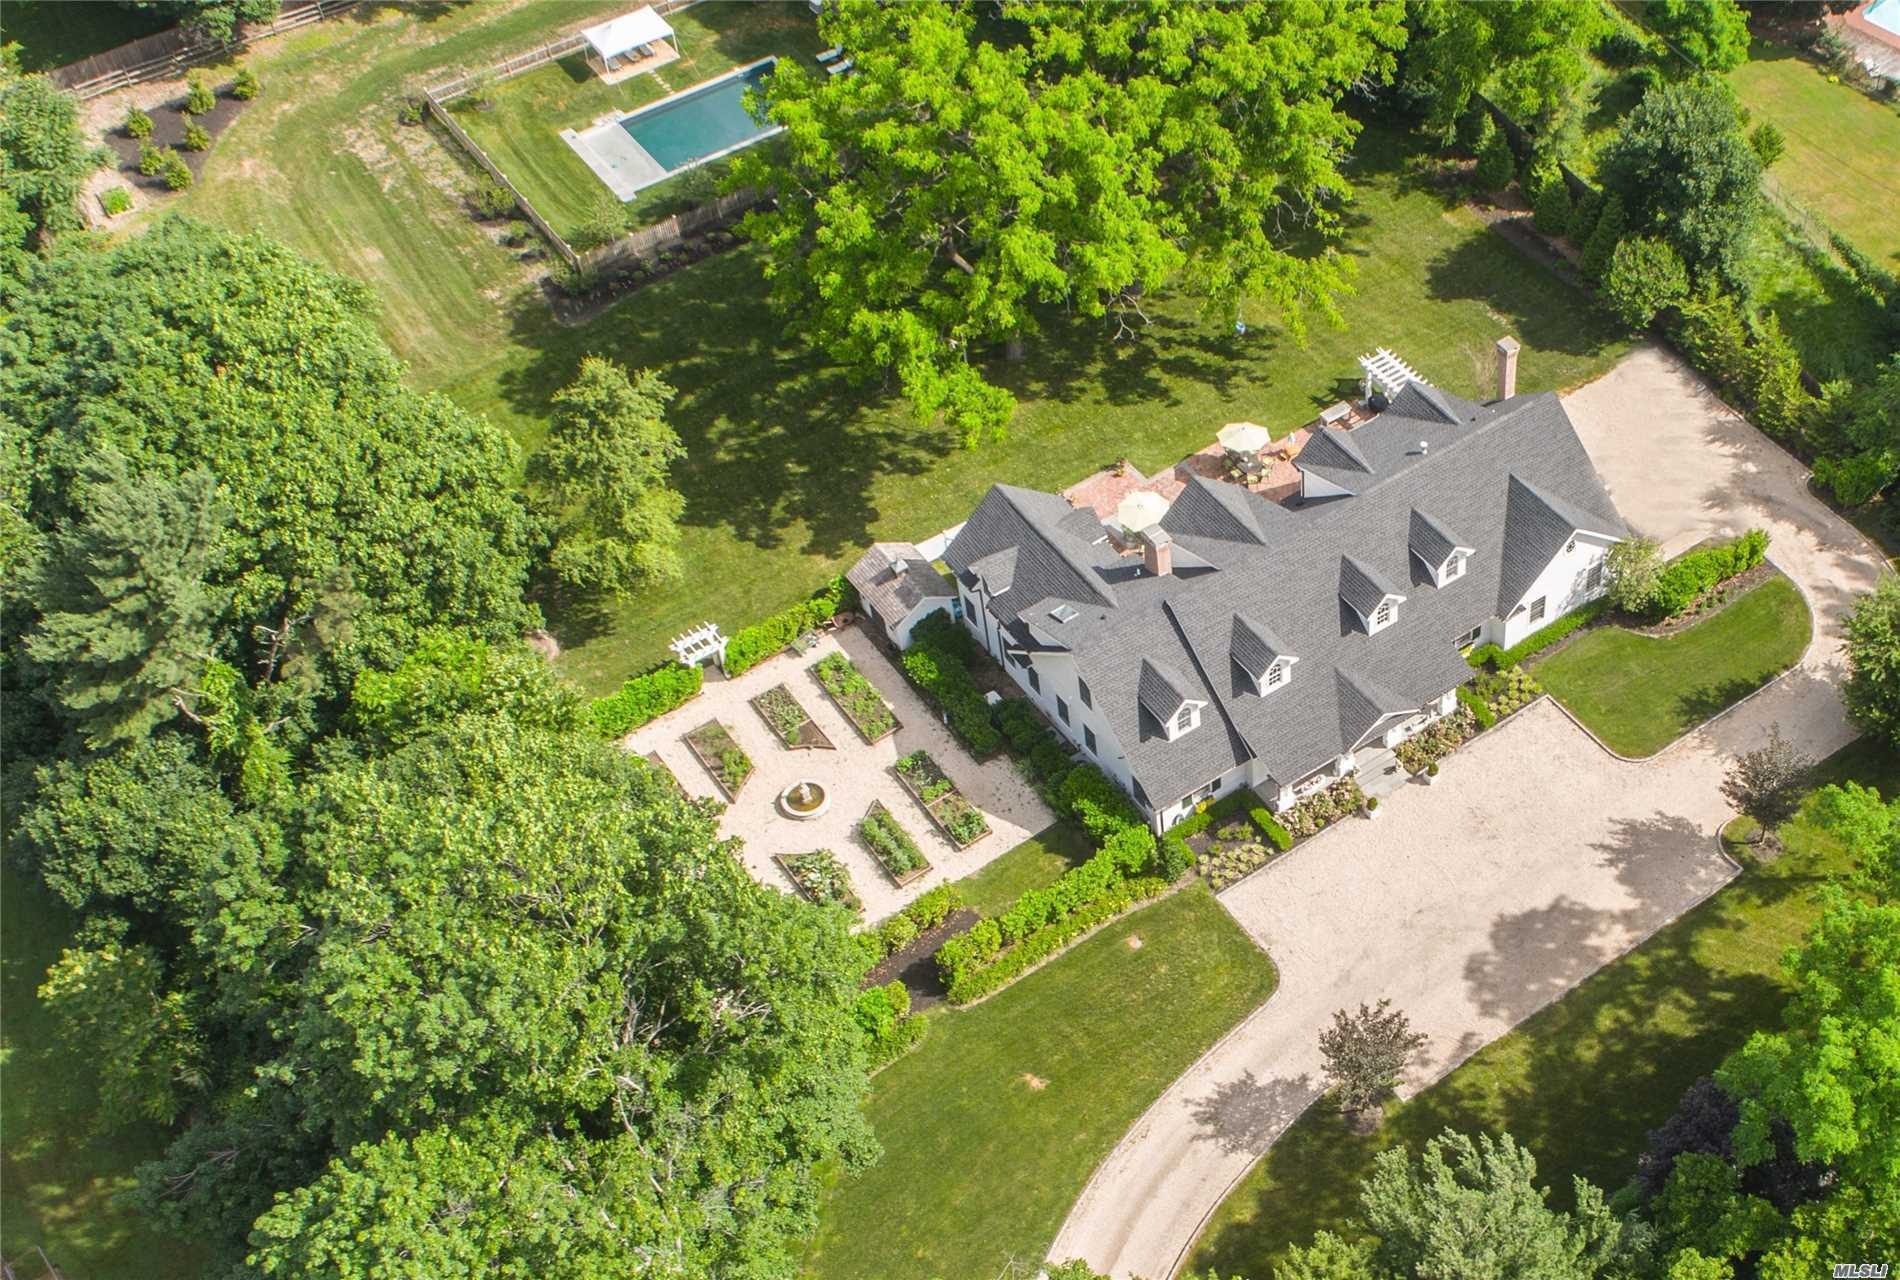 Spectacular Showcase Custom Colonial In Upper Brookville. Designed, Developed And Built In 2013 On 2 Flat Acres. The Property Features A Salt Water Swimming Pool, Expansive Patio, Formal Gardens And Natural Gas. A Covered Front Portico Leads To An Open Floor Plan Layout Inside. Packard Cabinetry In The Kitchen And All Built-Ins Throughout. 5 Bedrooms And 4.5 Baths. A Recent Price Adjustment And Successful Tax Case Now Implemented Make This Beautiful Home A Real Catch And Great Buy!